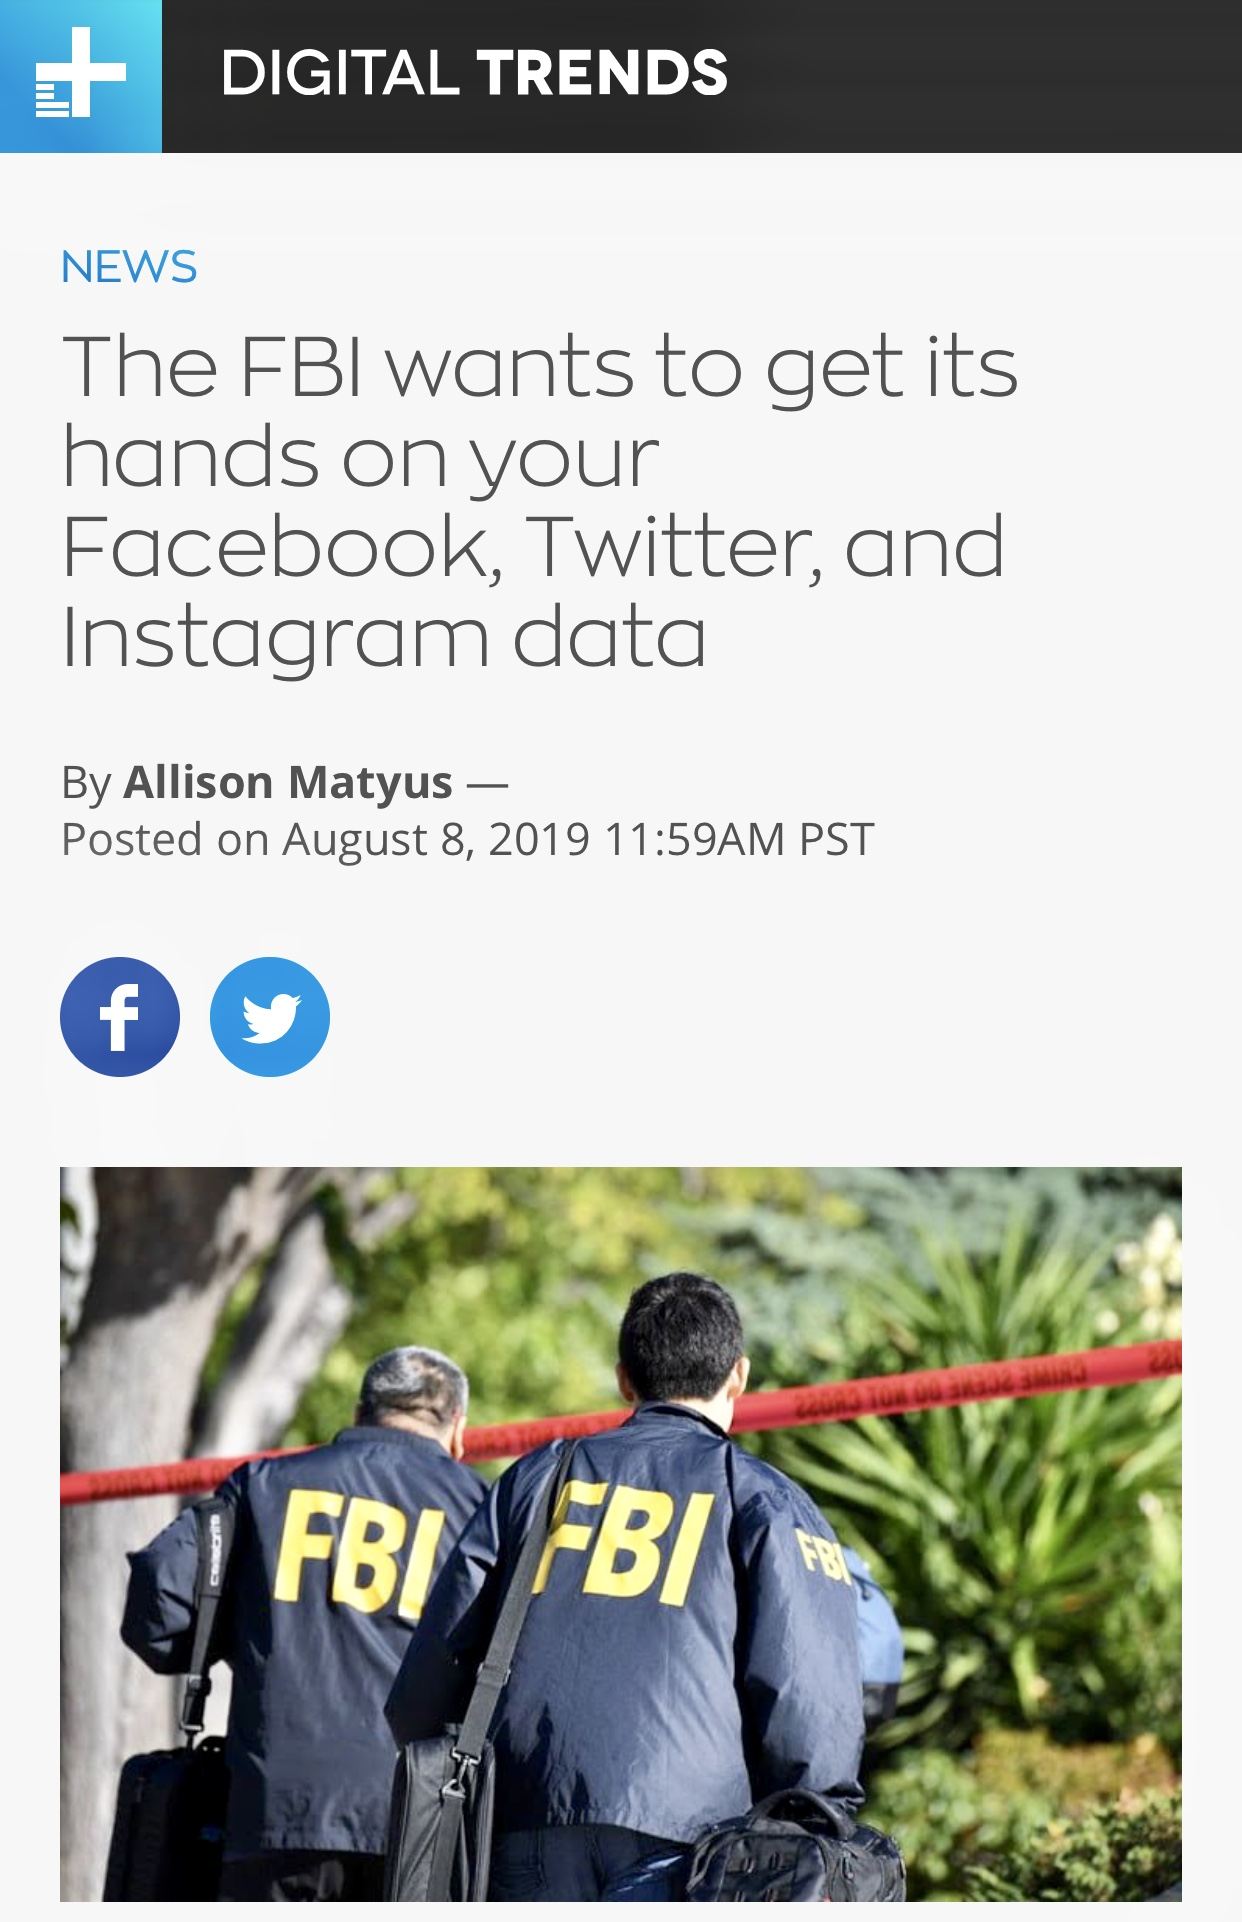 FBI Wants to Collect Social Media Data From Instagram, Facebook, and Twitter | Digital Trends